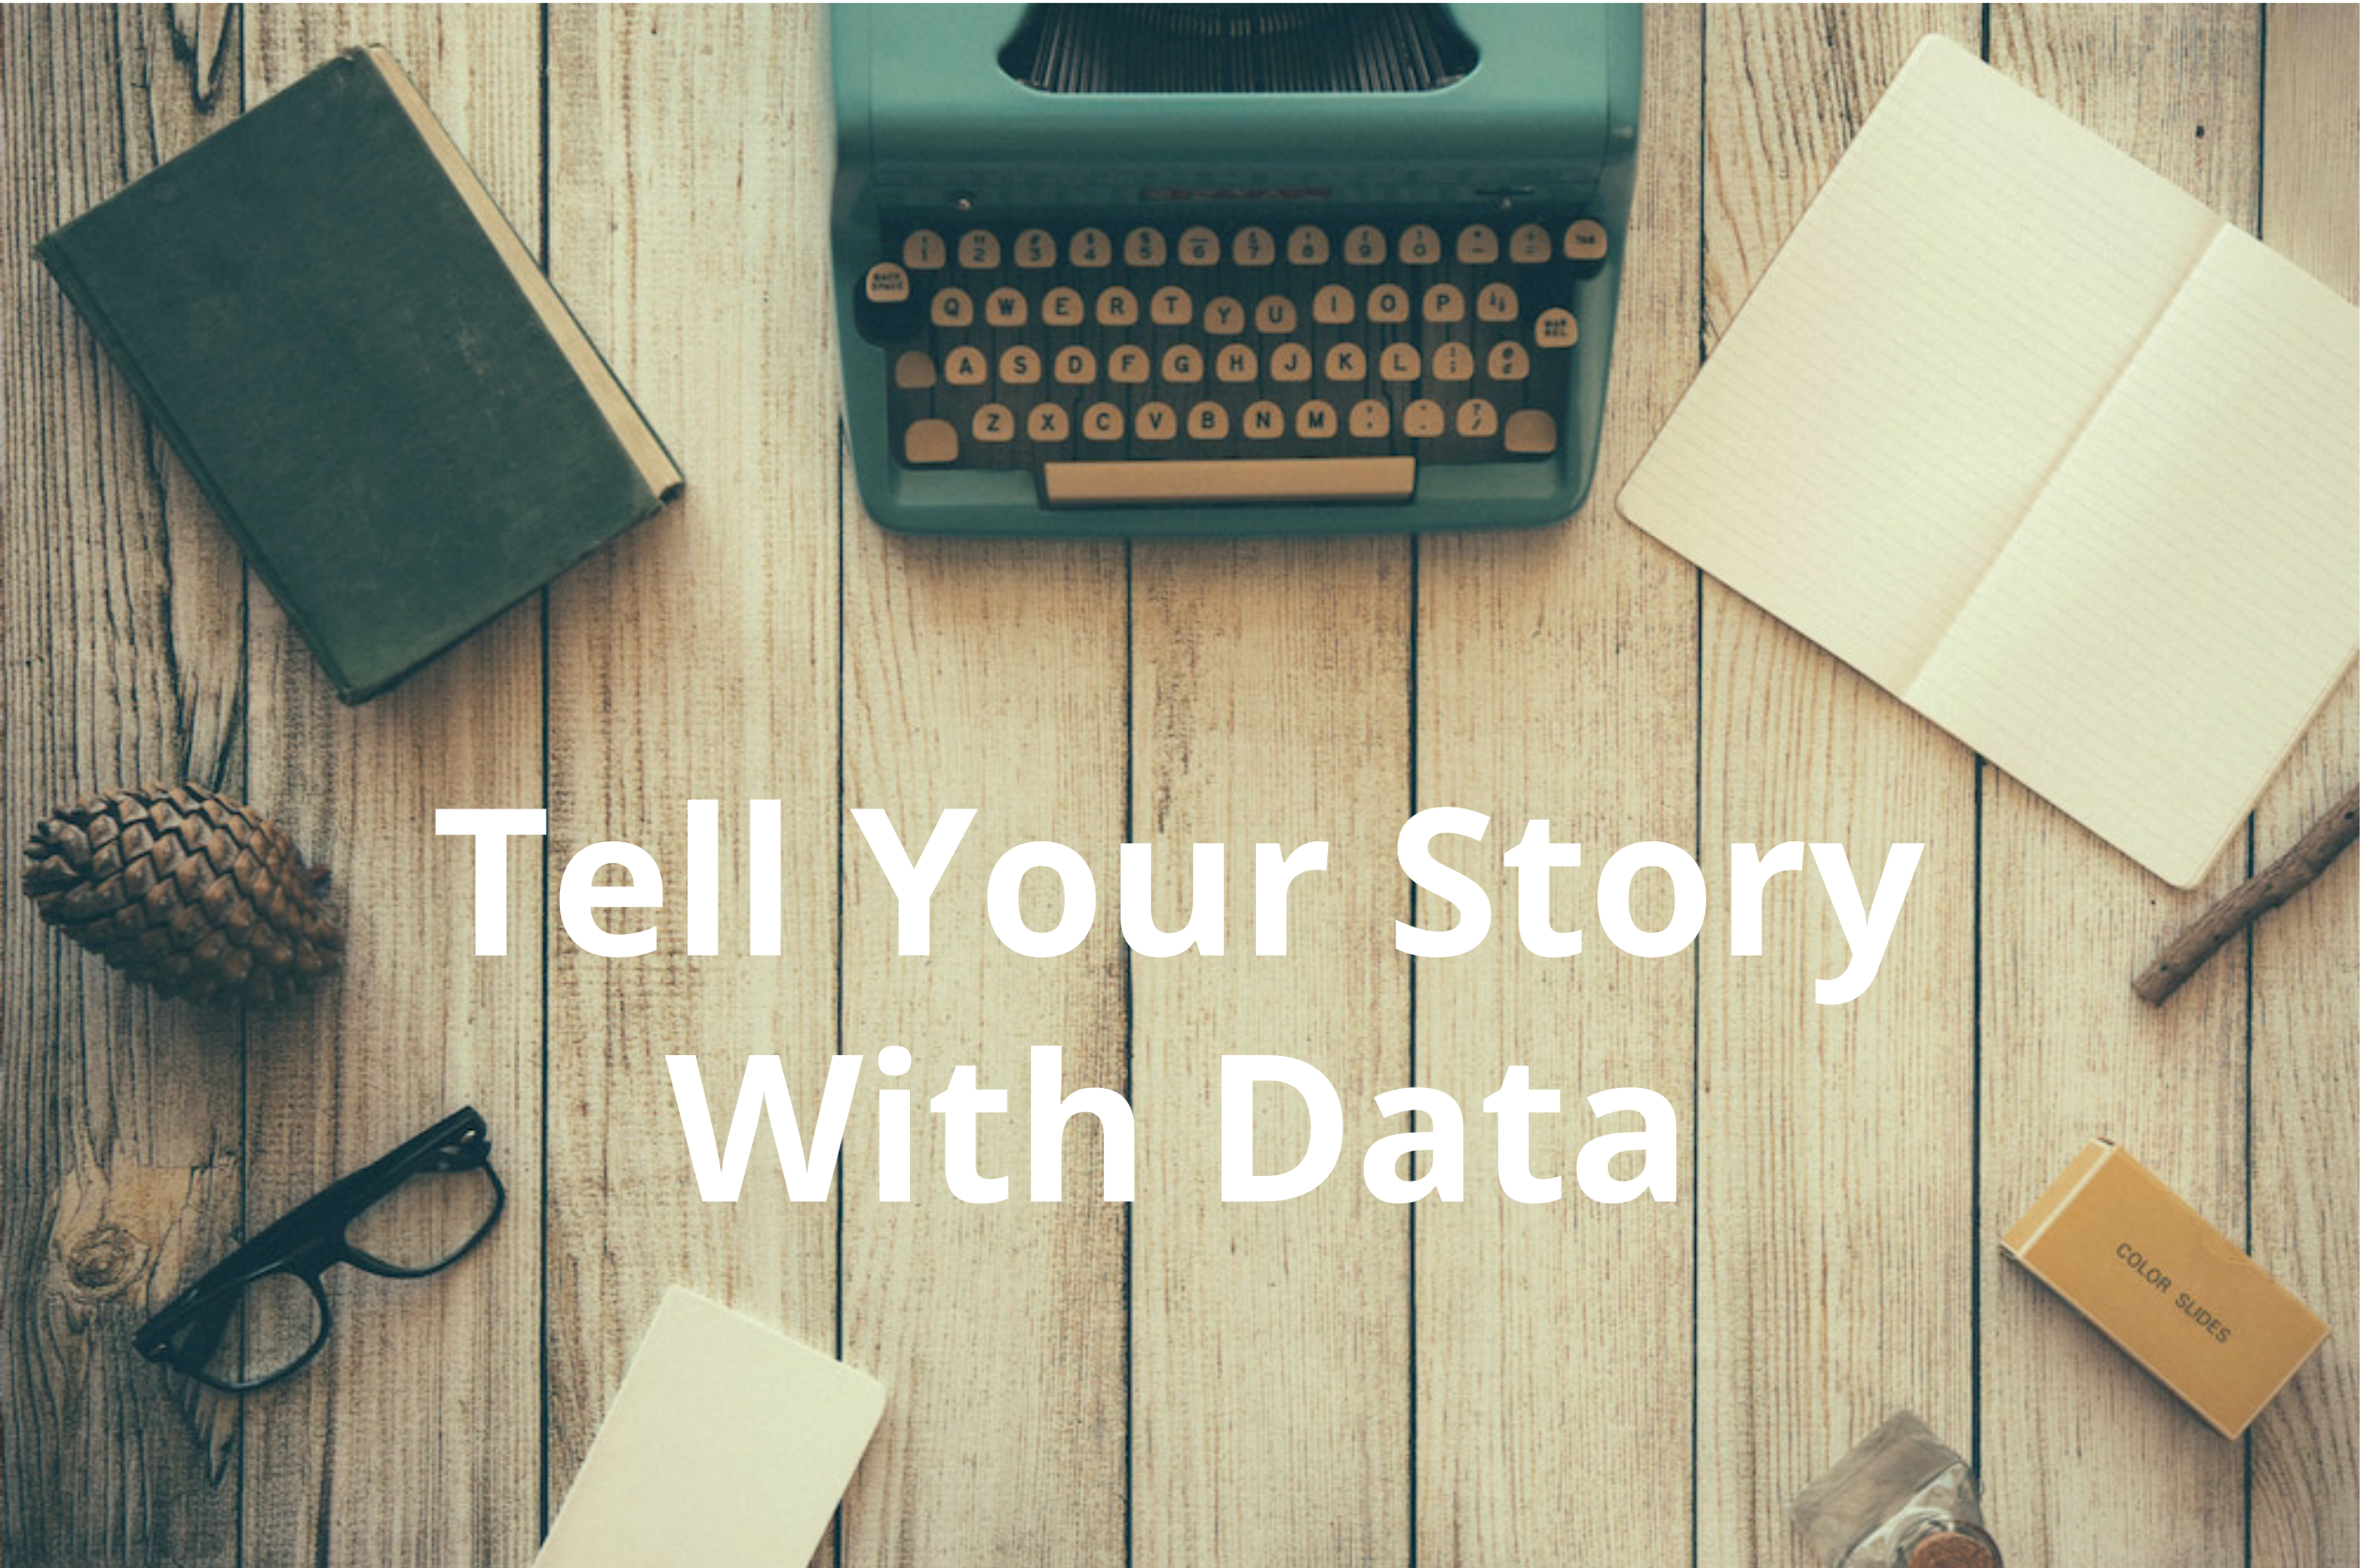 Tell Your Story With Data